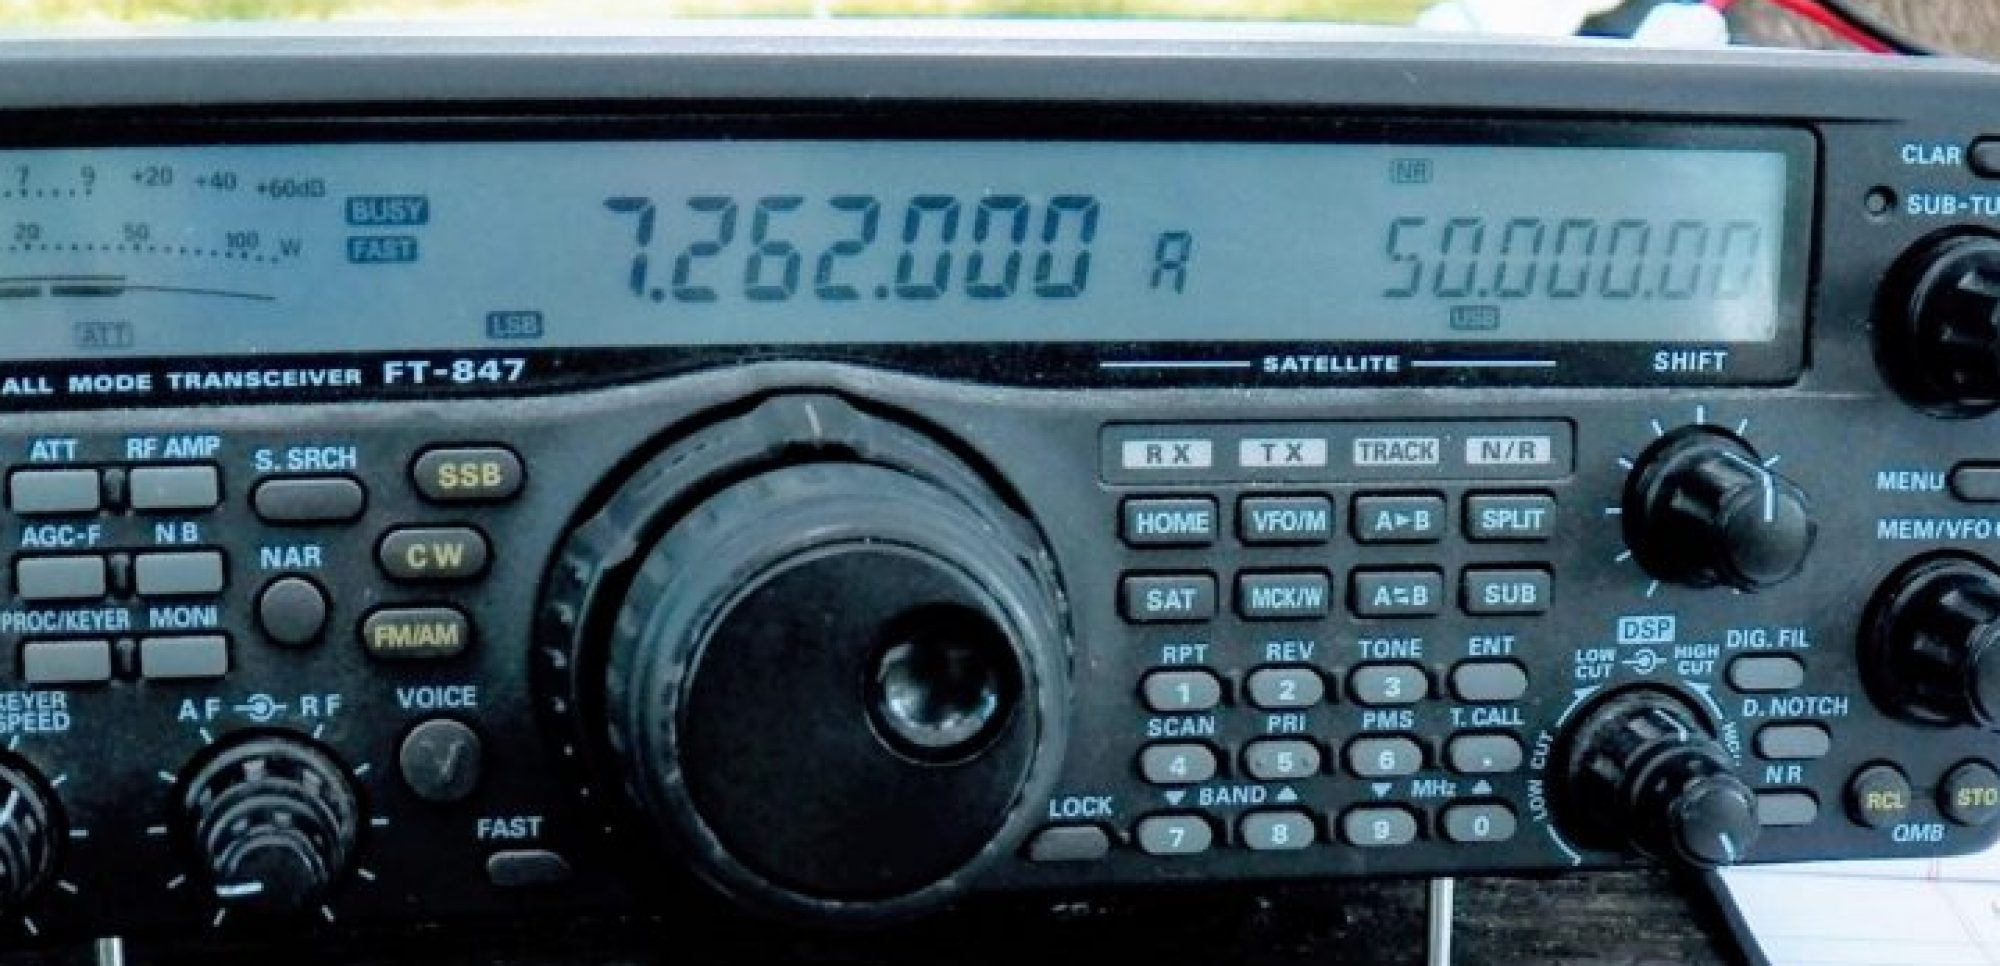 CHIPPEWA VALLEY AMATEUR RADIO CLUB